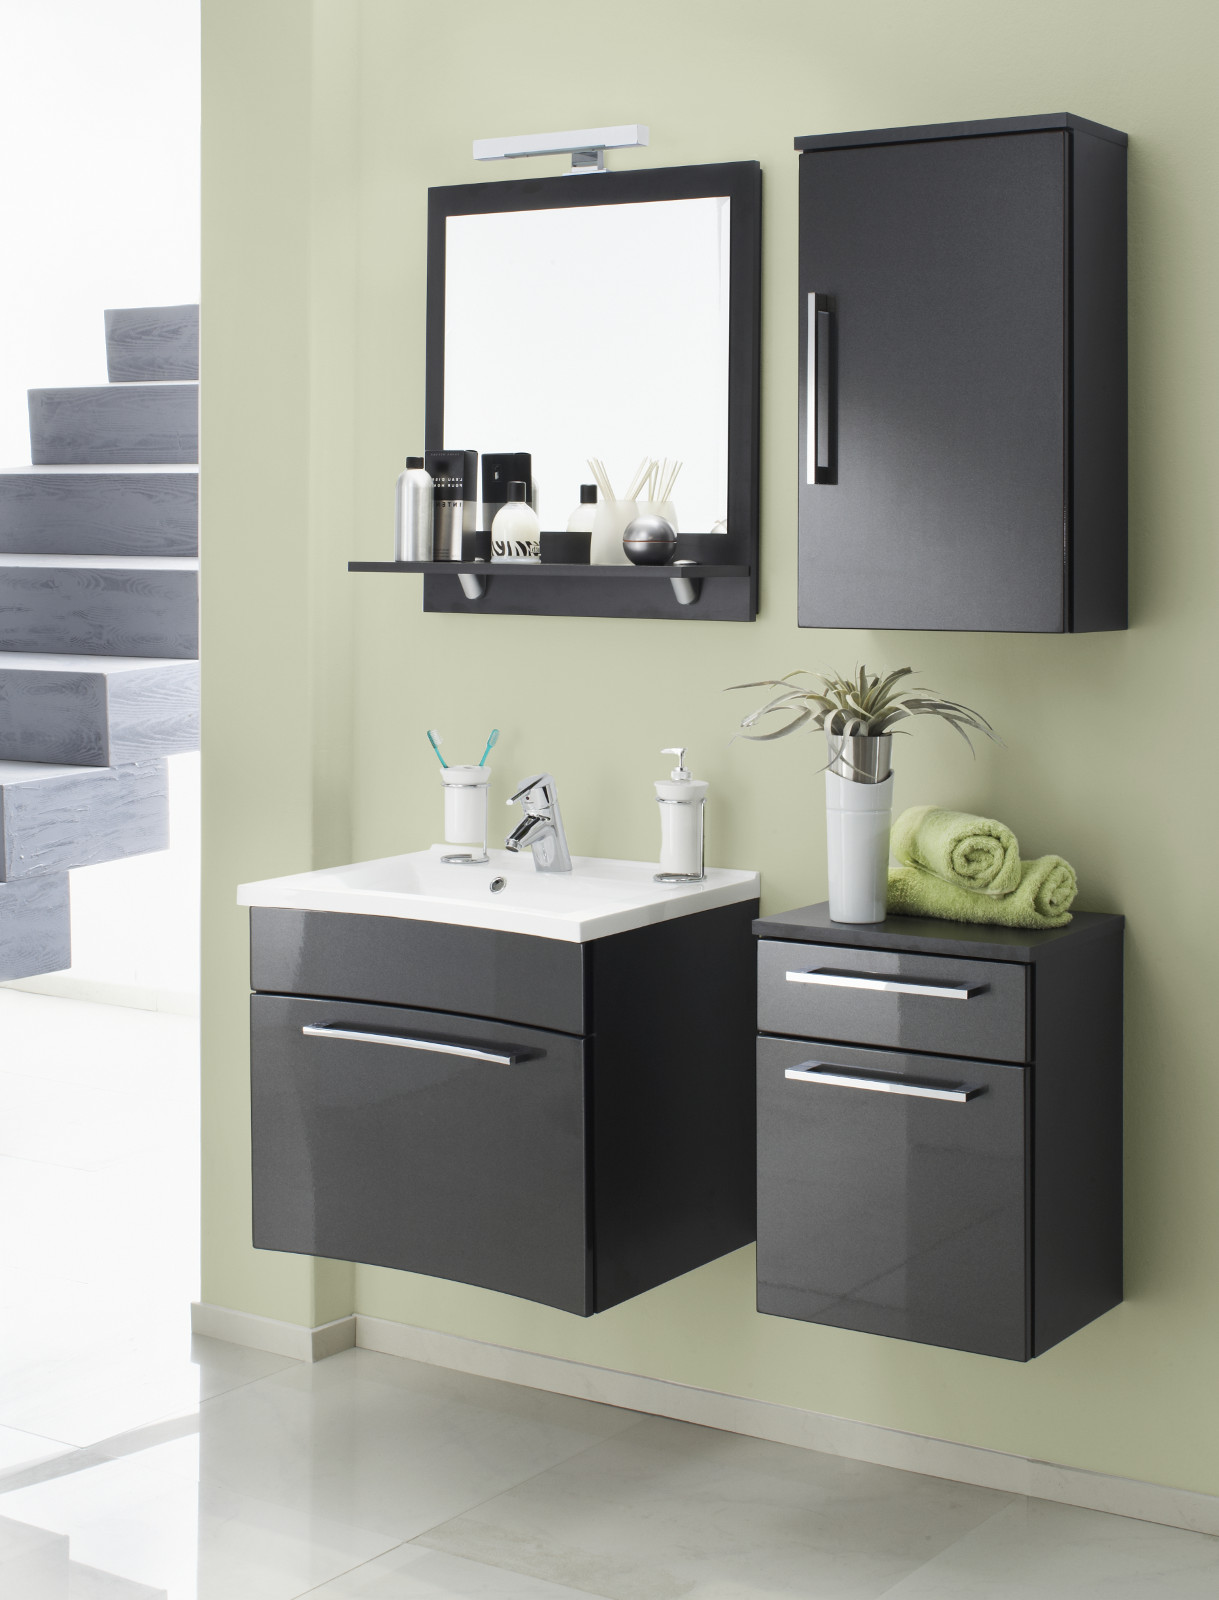 badm bel unterschrank in anthrazit hochglanz. Black Bedroom Furniture Sets. Home Design Ideas